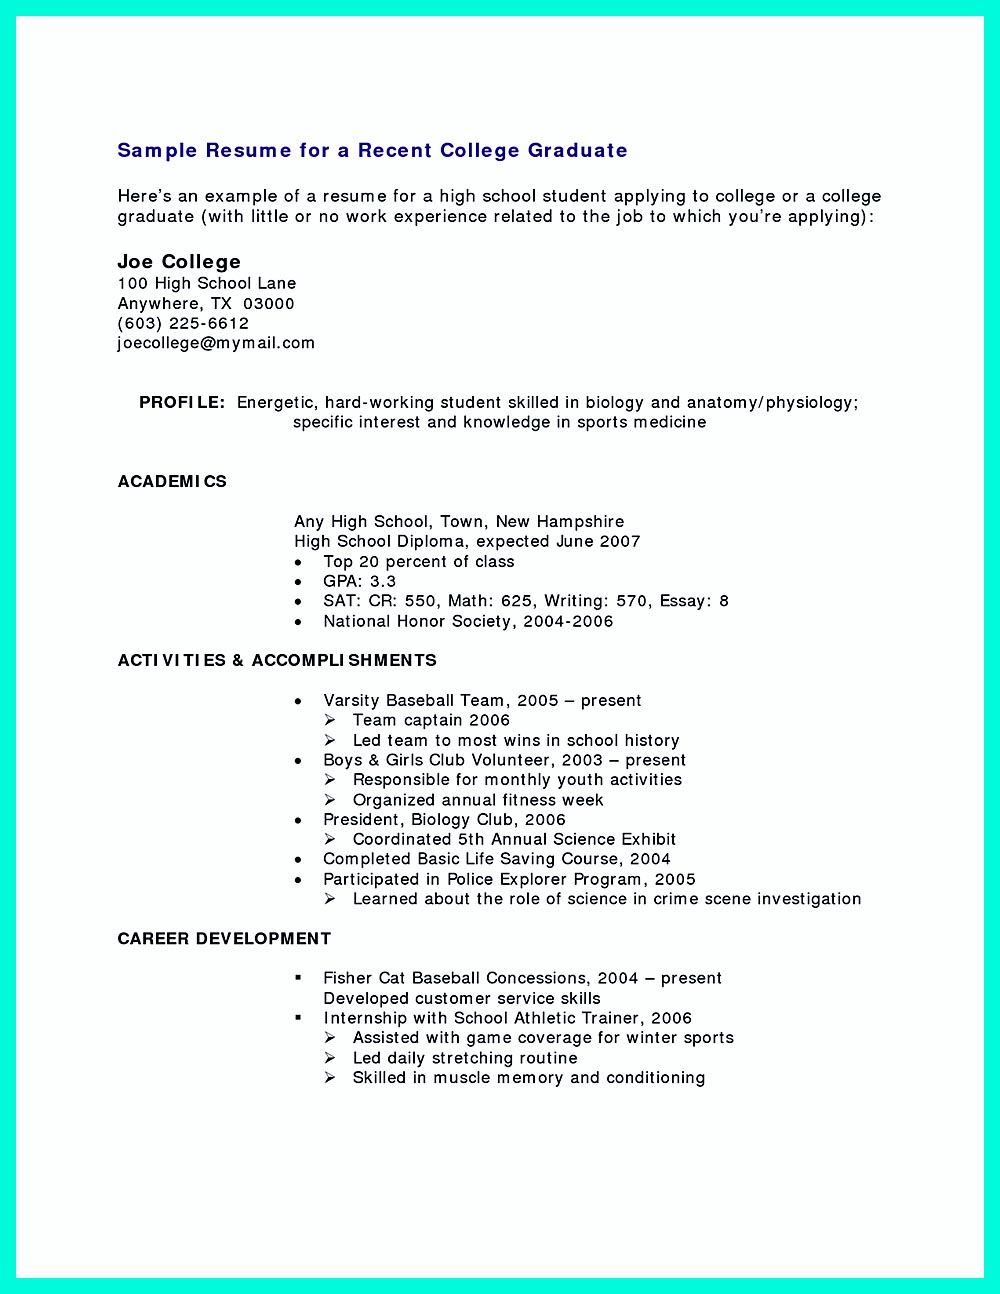 College graduate resume is needed If you think resume is not – Resume Example for College Graduate